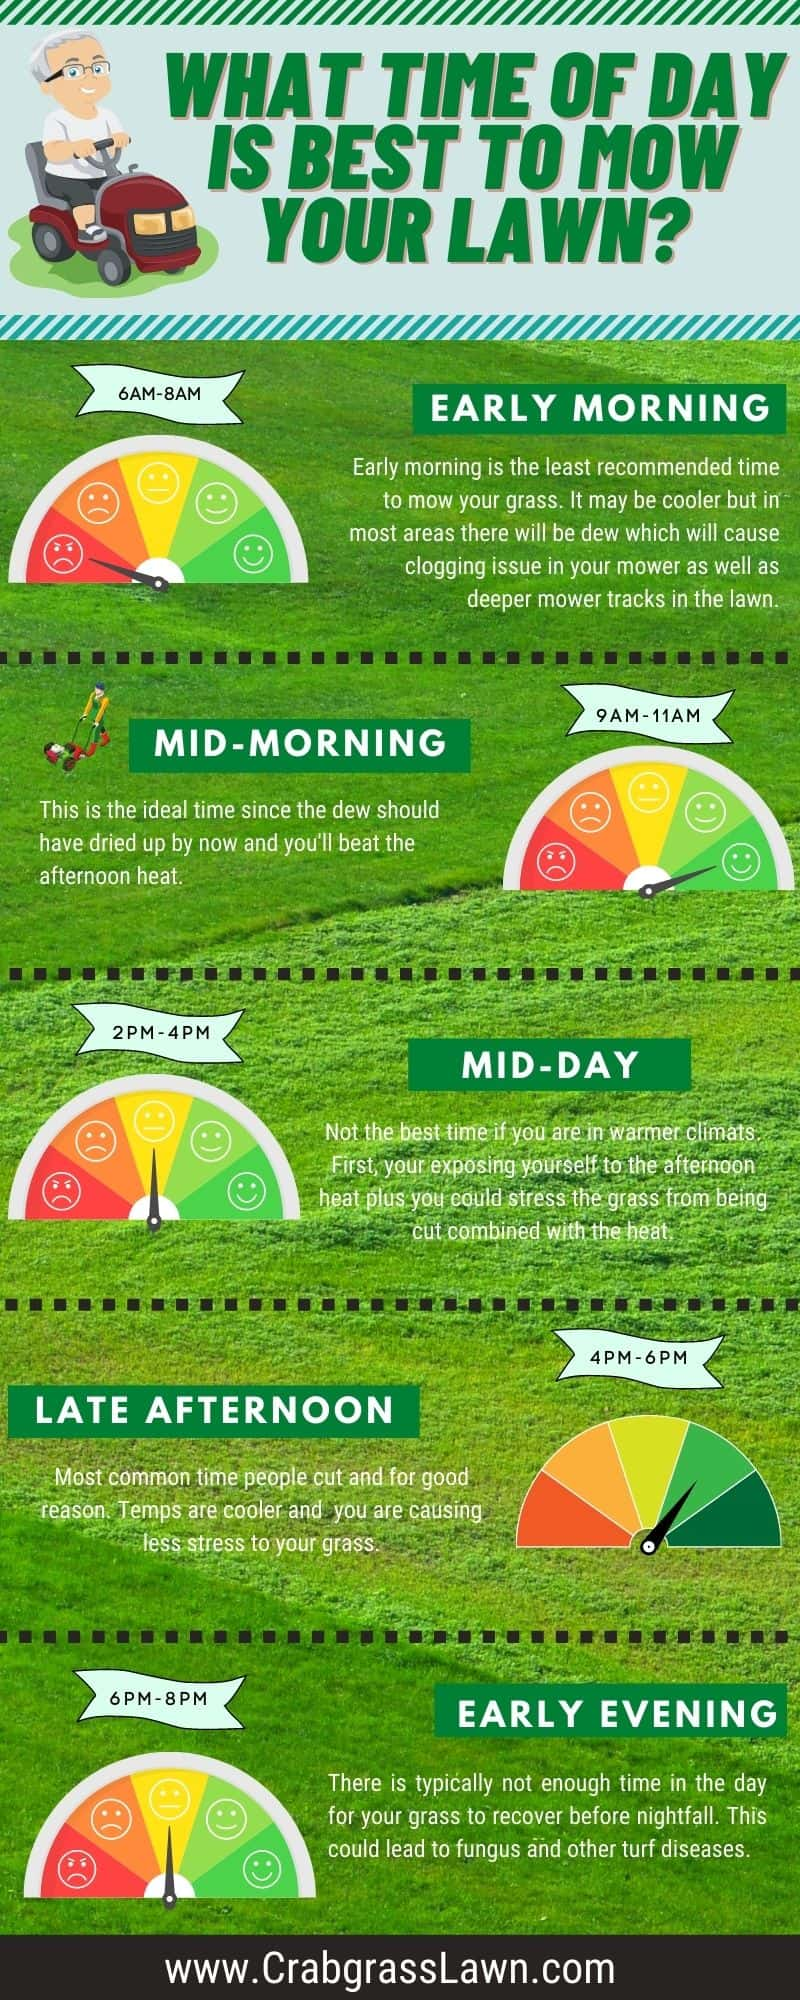 what is the best time of day to mow your lawn infographic